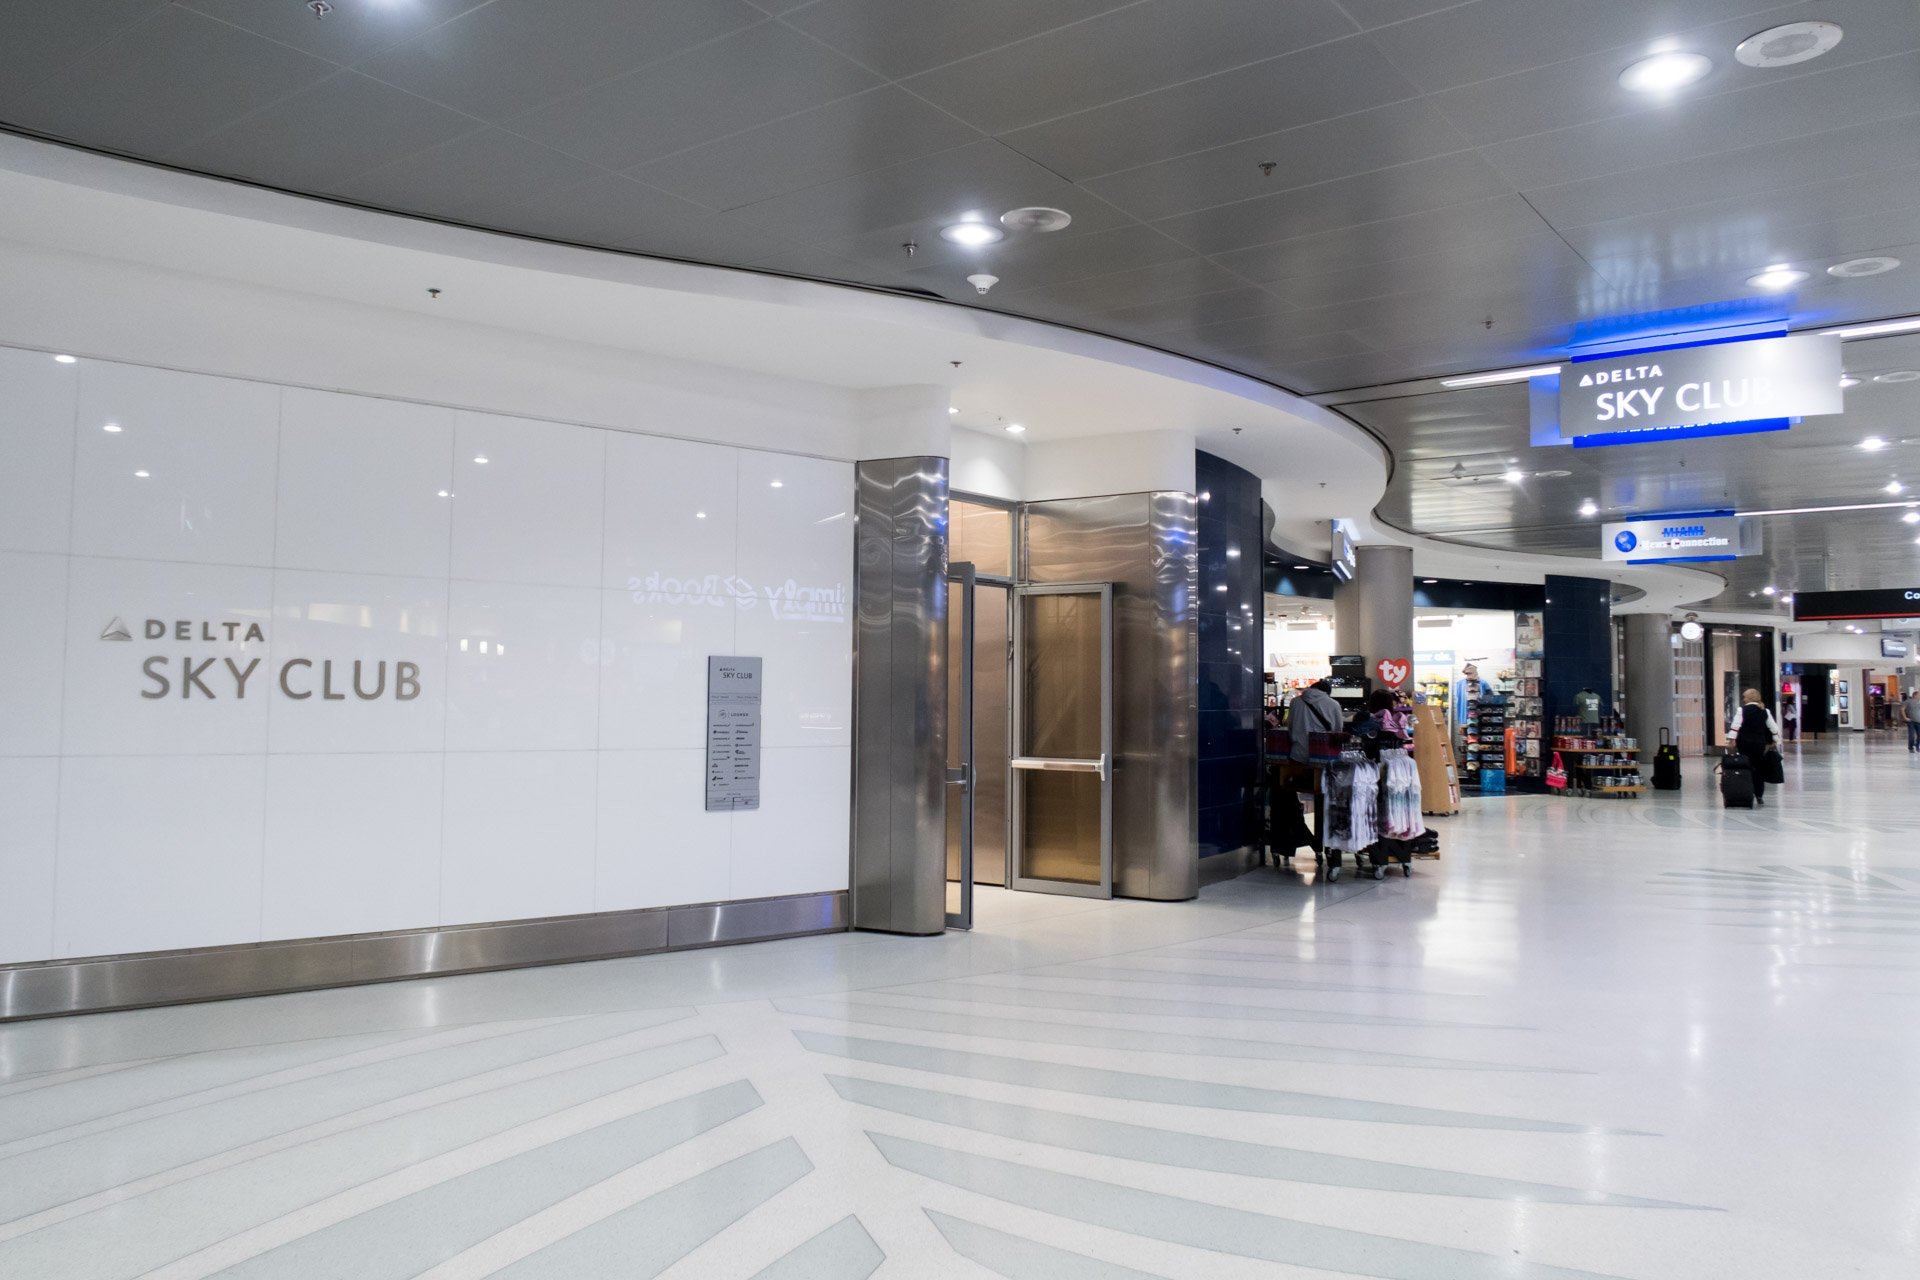 Lounge Review: Delta Sky Club at Miami International